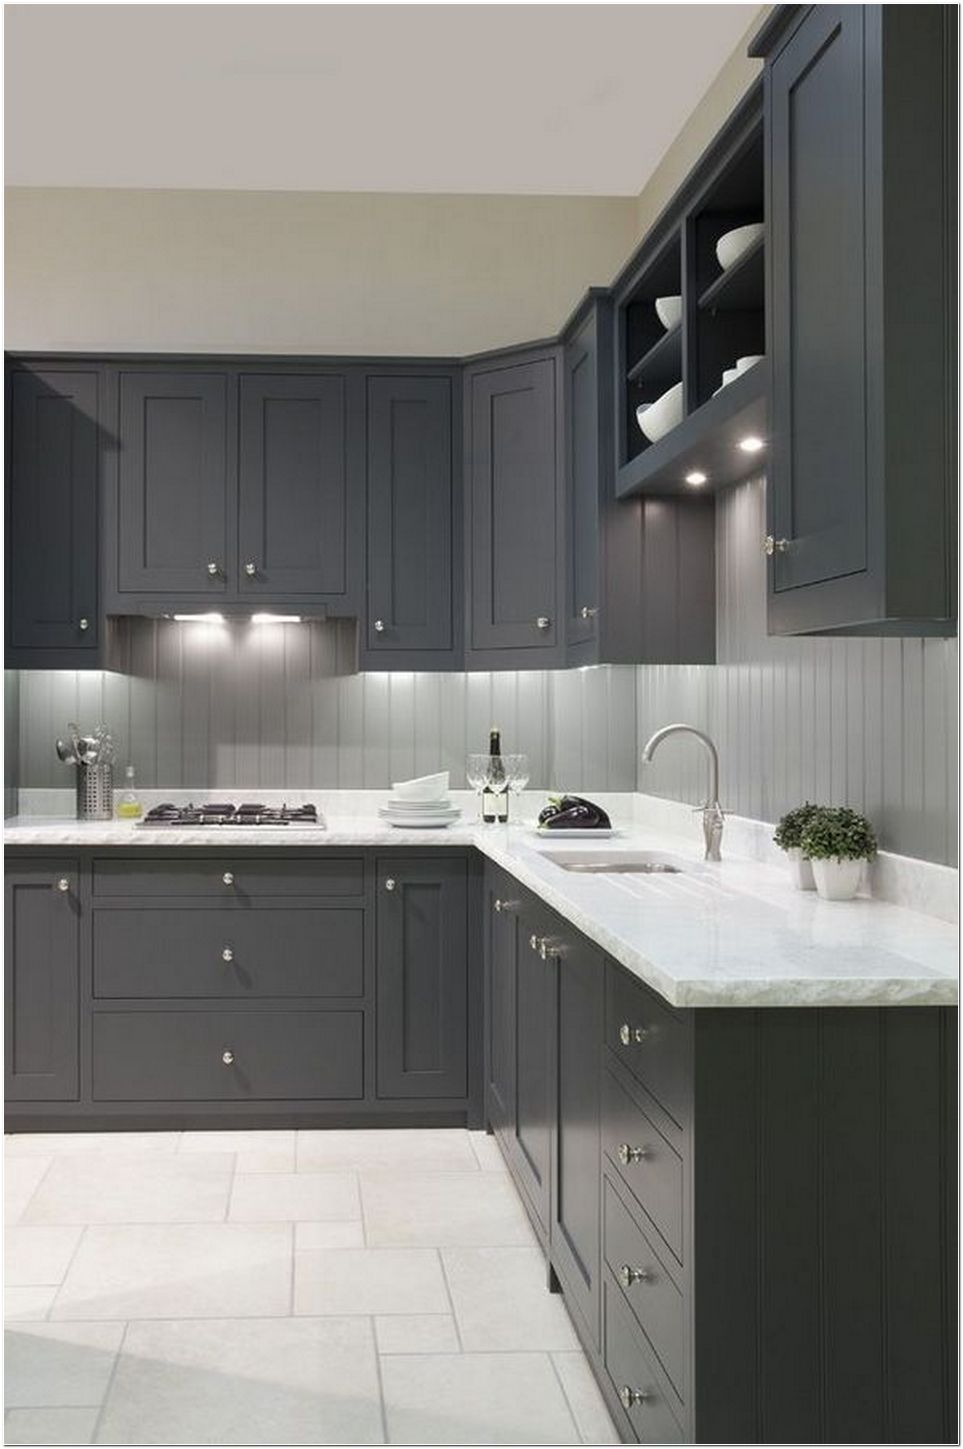 65 the battle over gray kitchen cabinets painted sherwin williams and how to win it 6 in 2020 on kitchen ideas gray id=69523